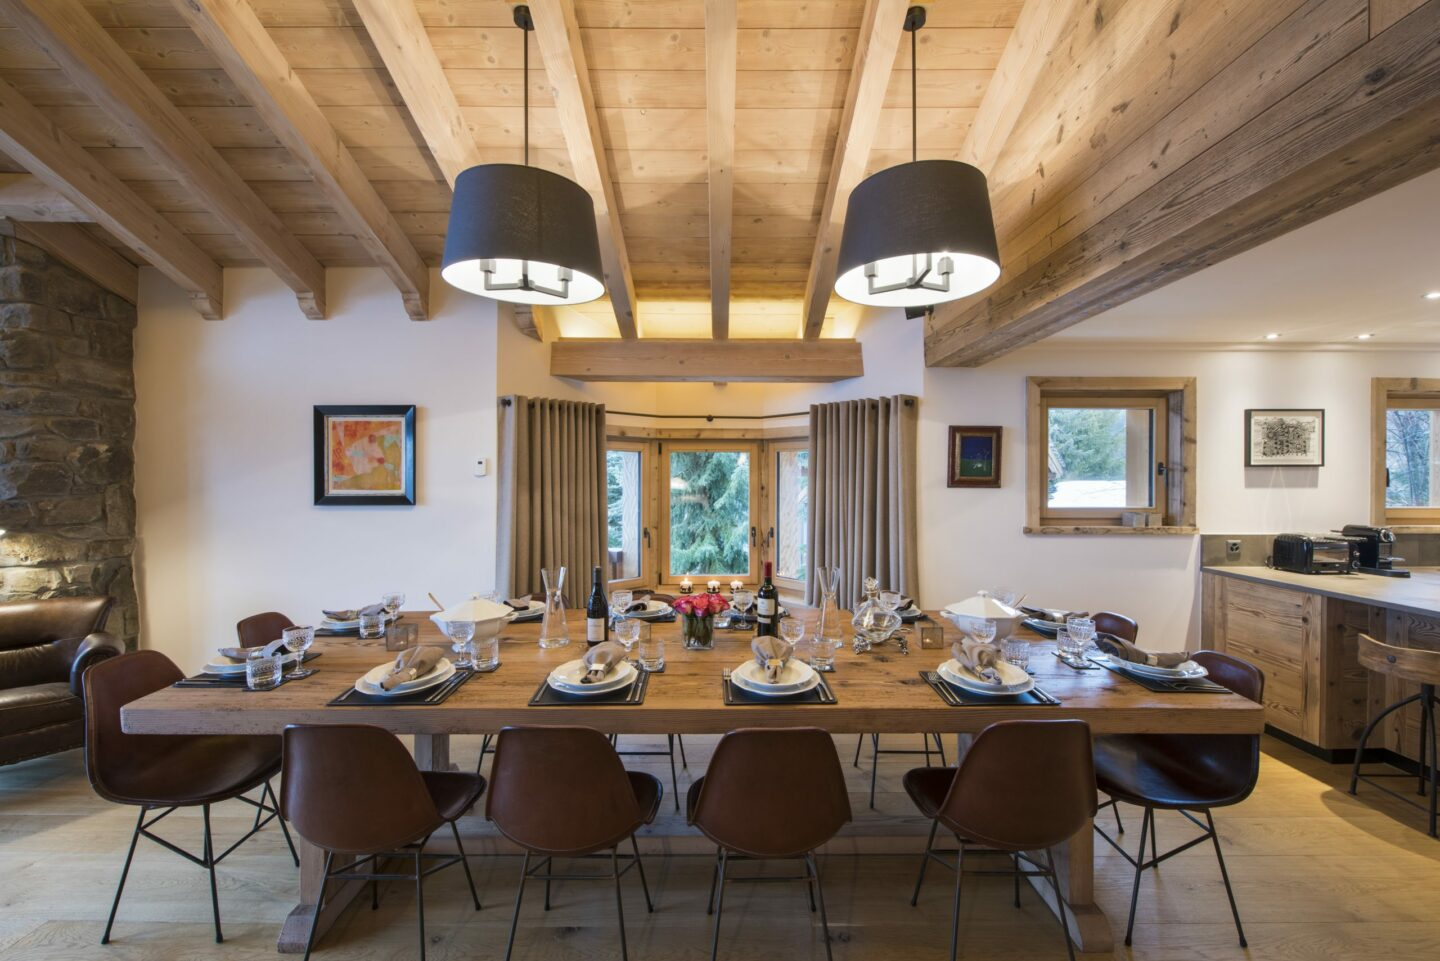 Dining space at Chalet Delormes in Verbier